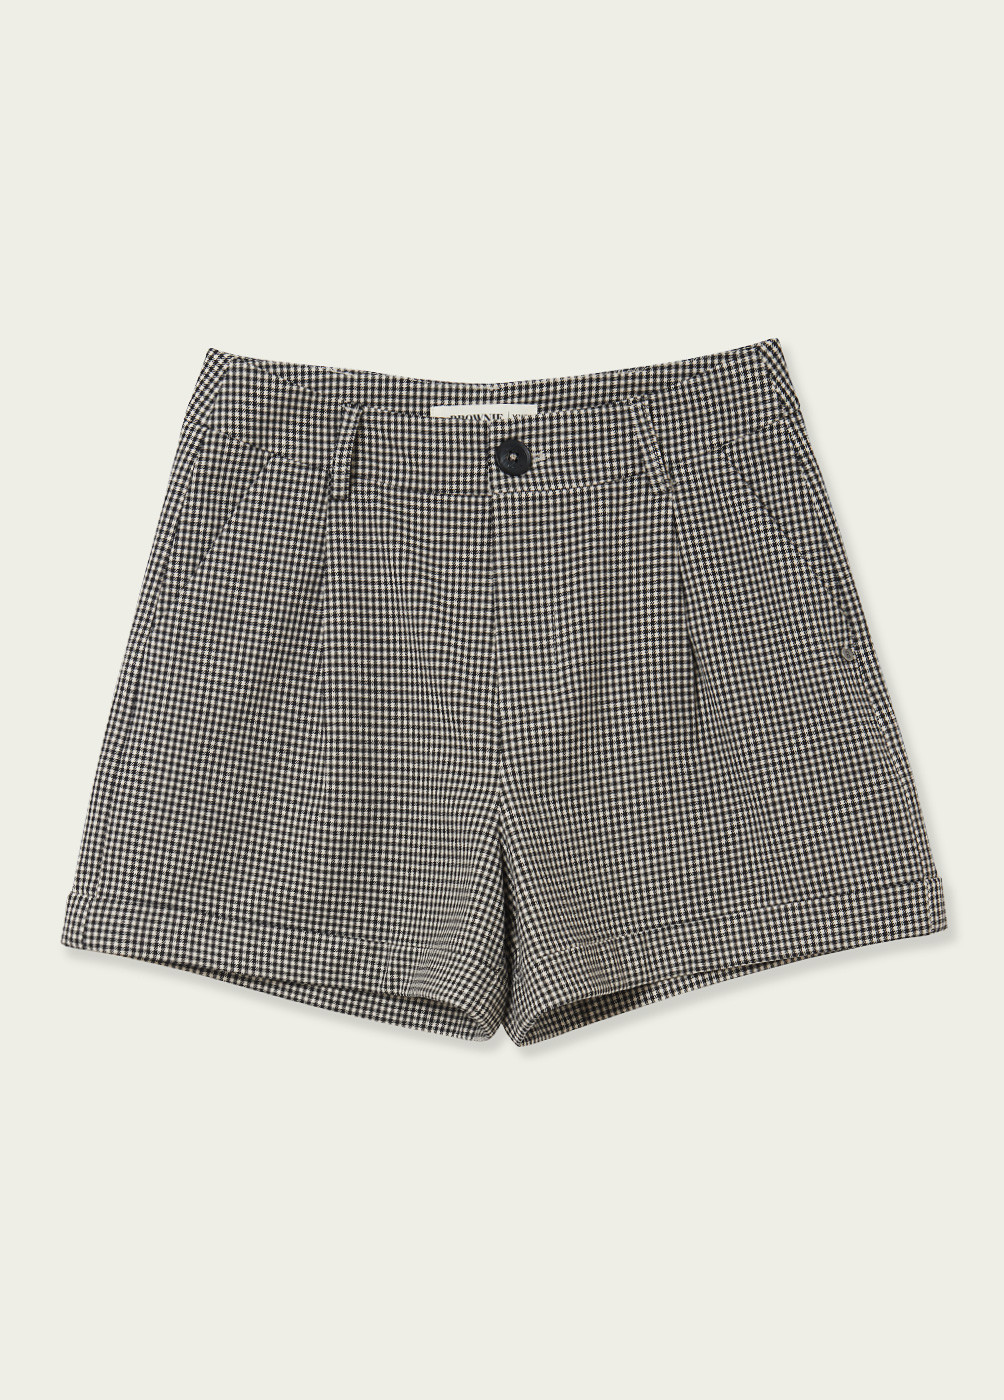 JARA GINGHAM SHORTS